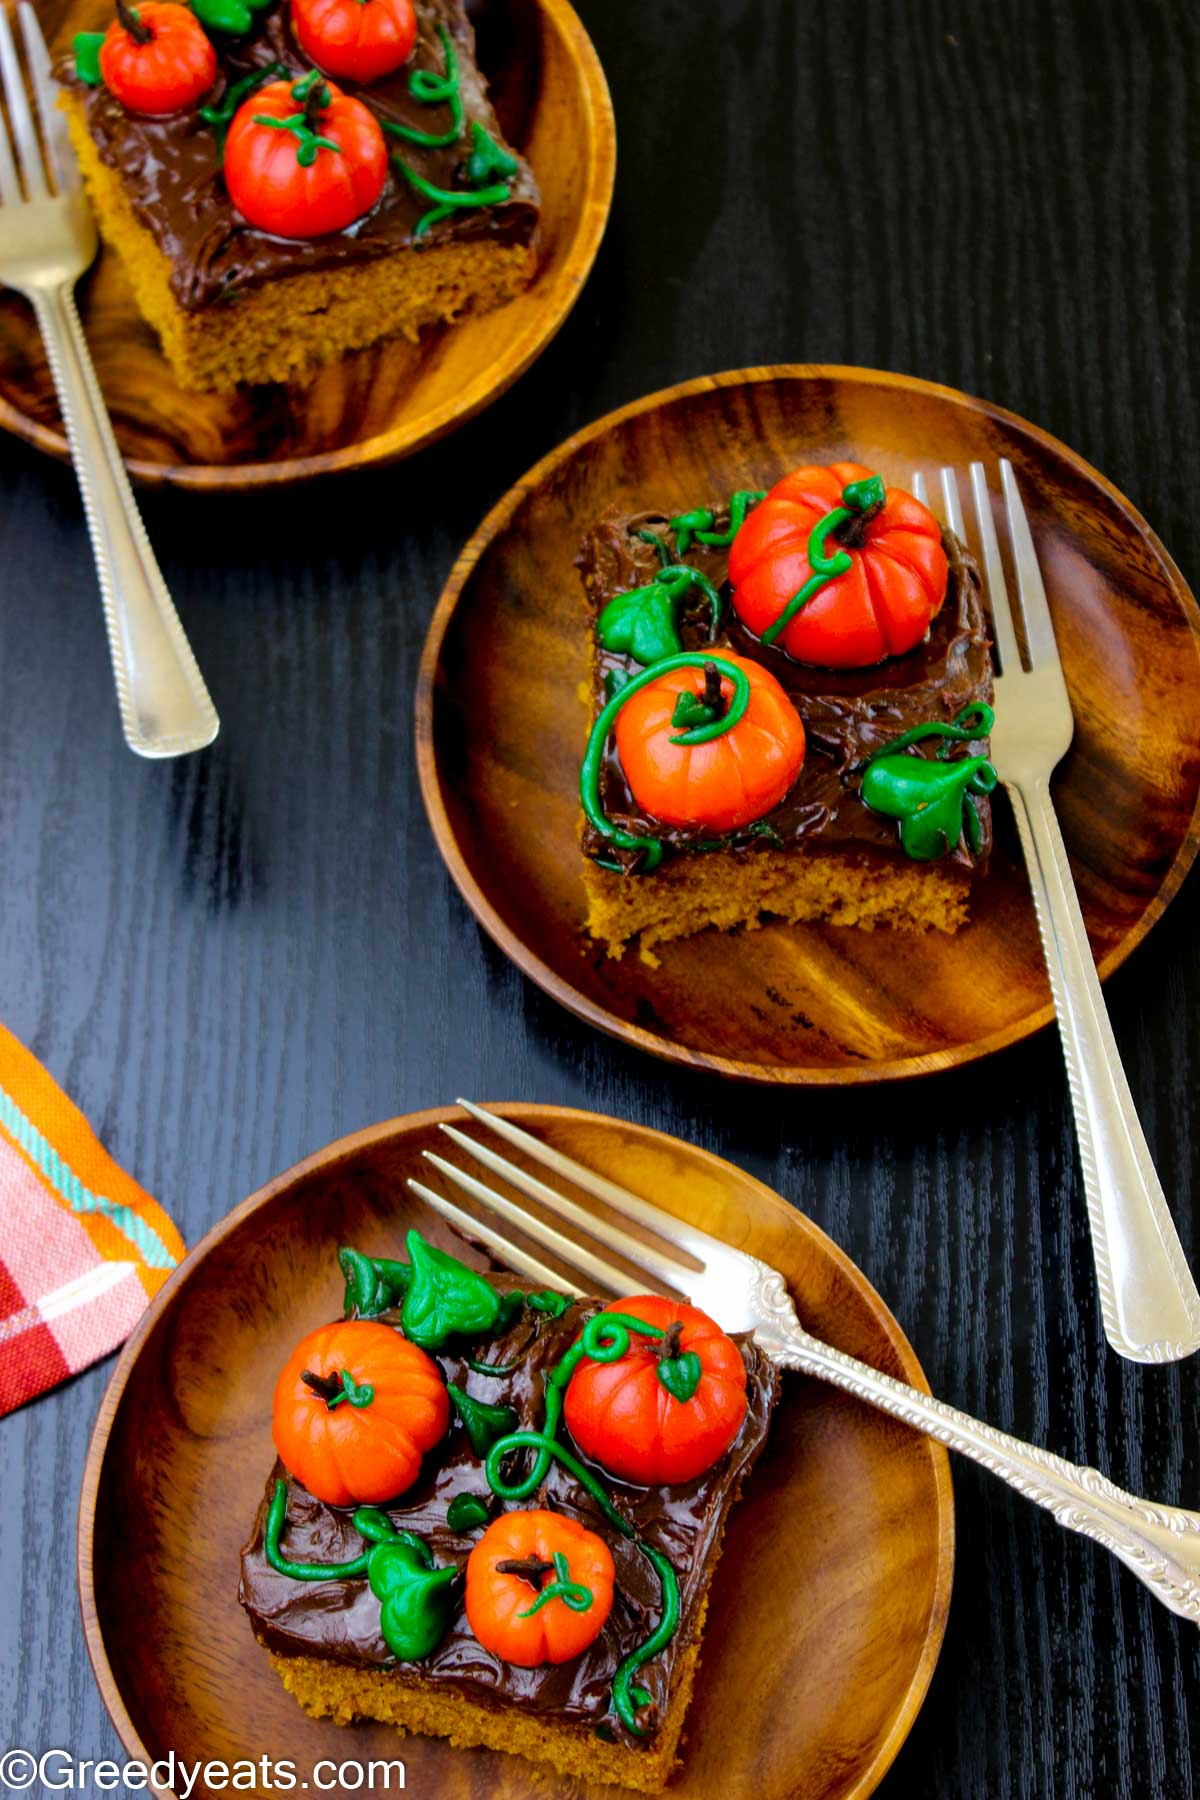 Slices of soft, moist and easy Pumpkin Cake recipe topped with whipped chocolate ganache and pumpkins.